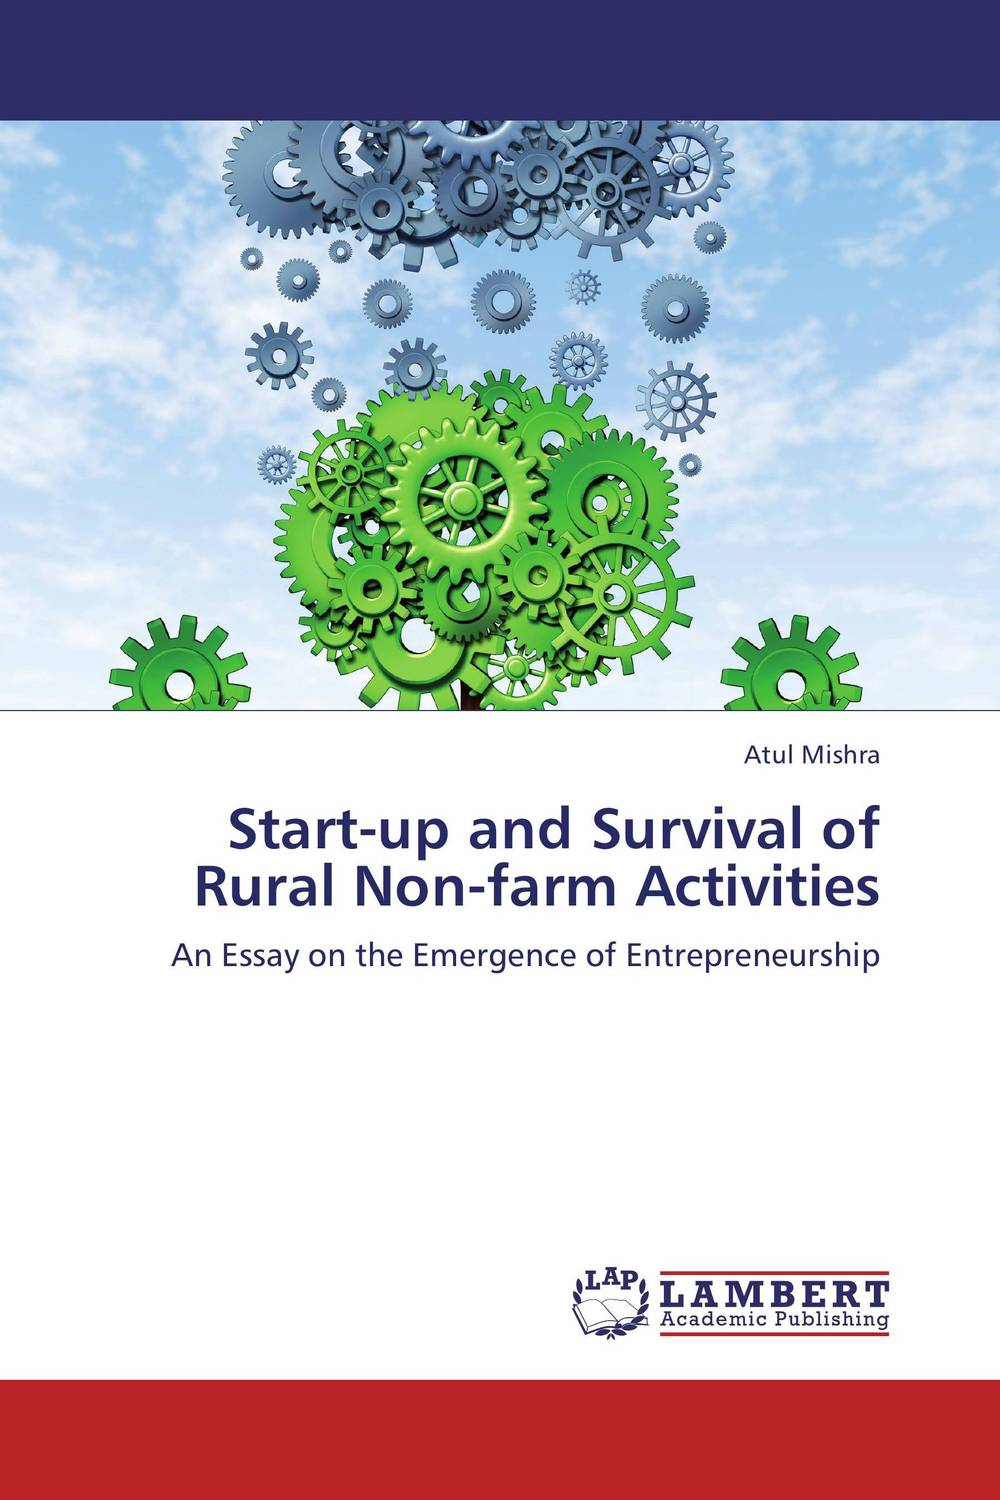 Start-up and Survival of Rural Non-farm Activities cheryl rickman the digital business start up workbook the ultimate step by step guide to succeeding online from start up to exit